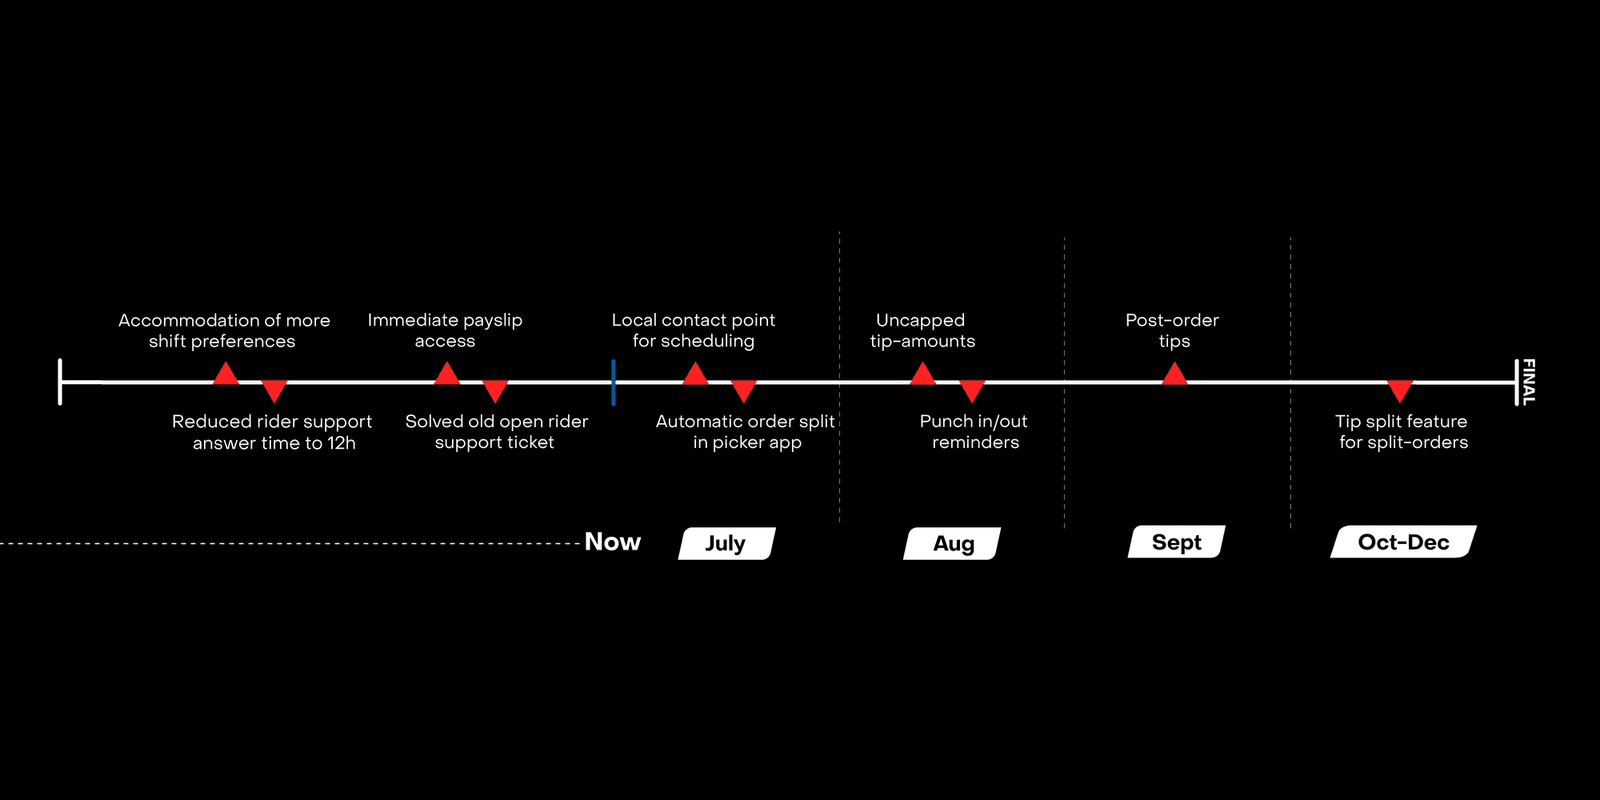 Timeline of the initiatives: Accommodation of more shift preferences, reduced rider support answer time to 12h, immediate payslip access, solved old open rider support ticket already addressed; local contact point for scheduling and automatic order split in picker app by end of July; uncapped tip amounts and punch in/out reminders in August; post-order tips in September and tip split feature or split-orders by the end of the year.